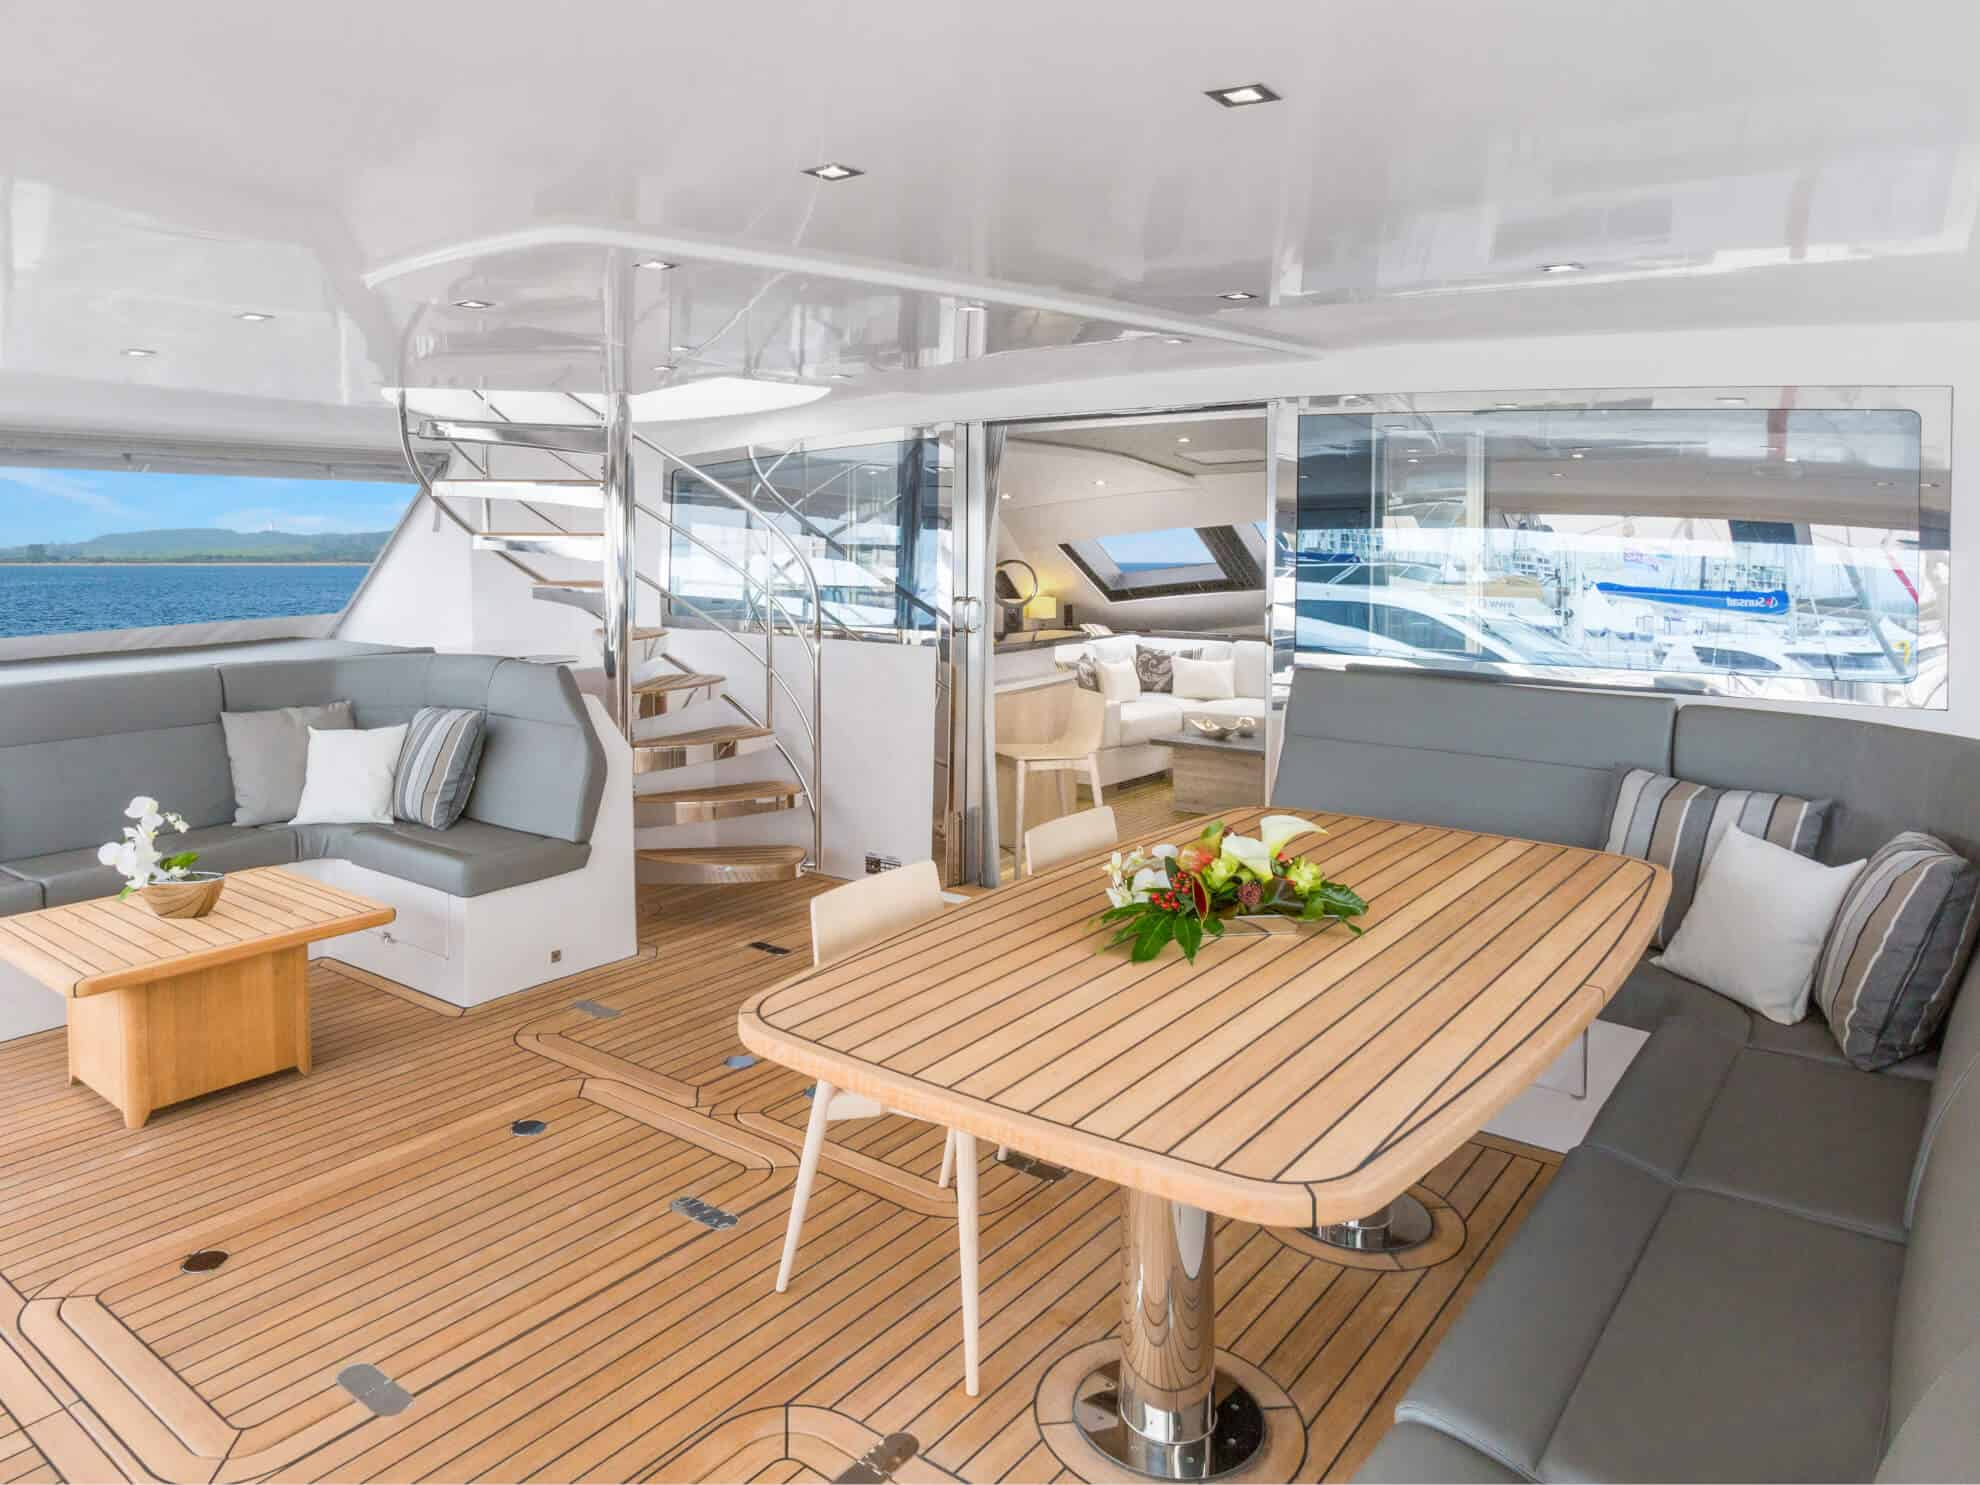 The cockpit seamlessly connects the indoor and outdoor living spaces